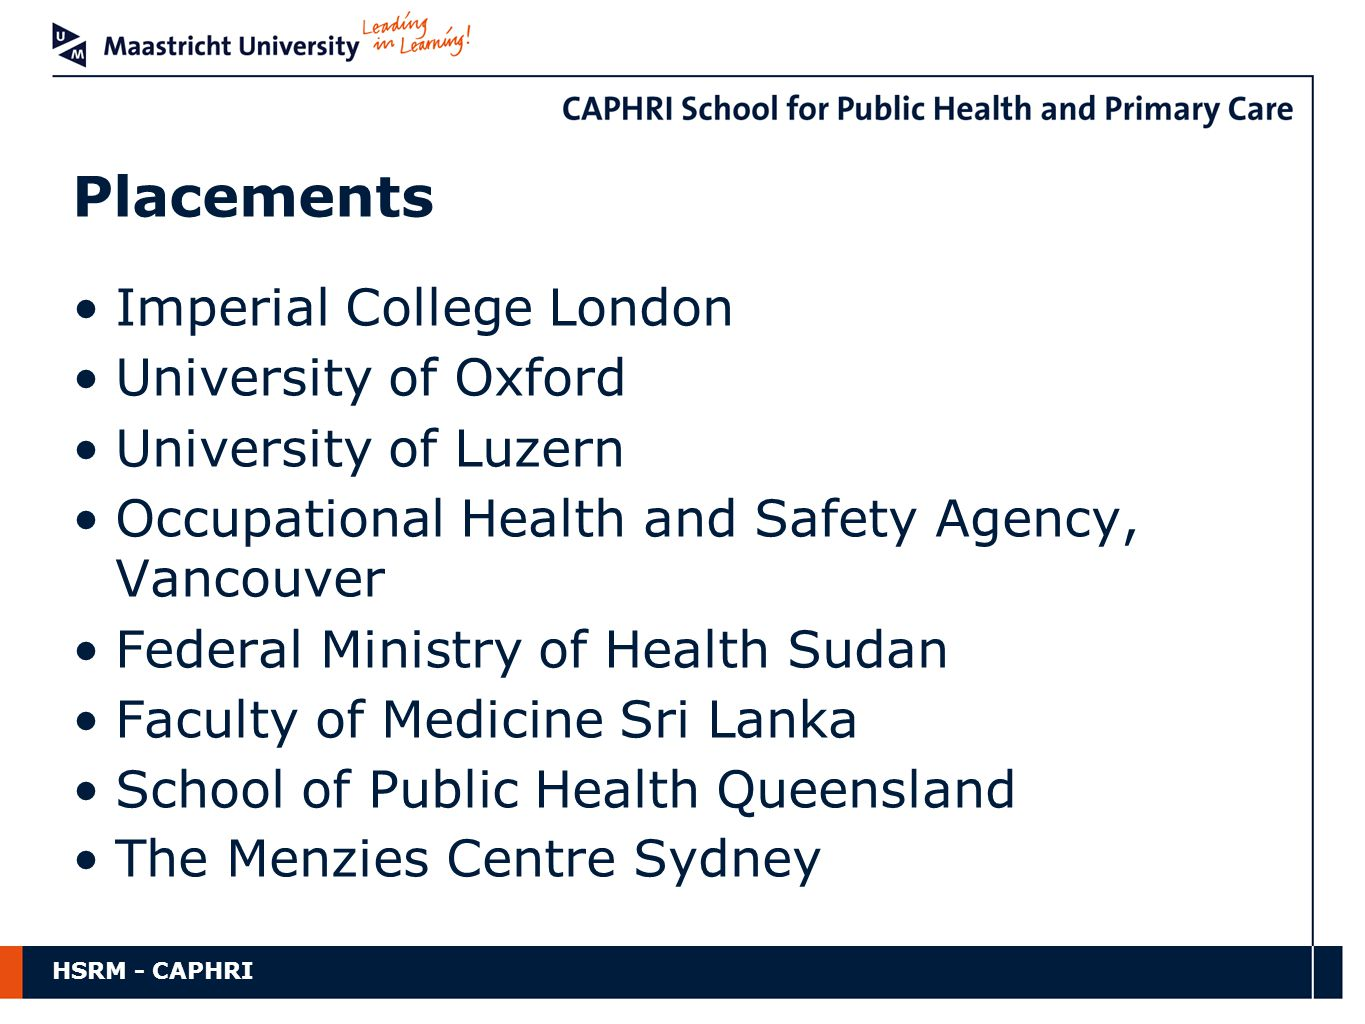 HSRM - CAPHRI Imperial College London University of Oxford University of Luzern Occupational Health and Safety Agency, Vancouver Federal Ministry of Health Sudan Faculty of Medicine Sri Lanka School of Public Health Queensland The Menzies Centre Sydney Placements